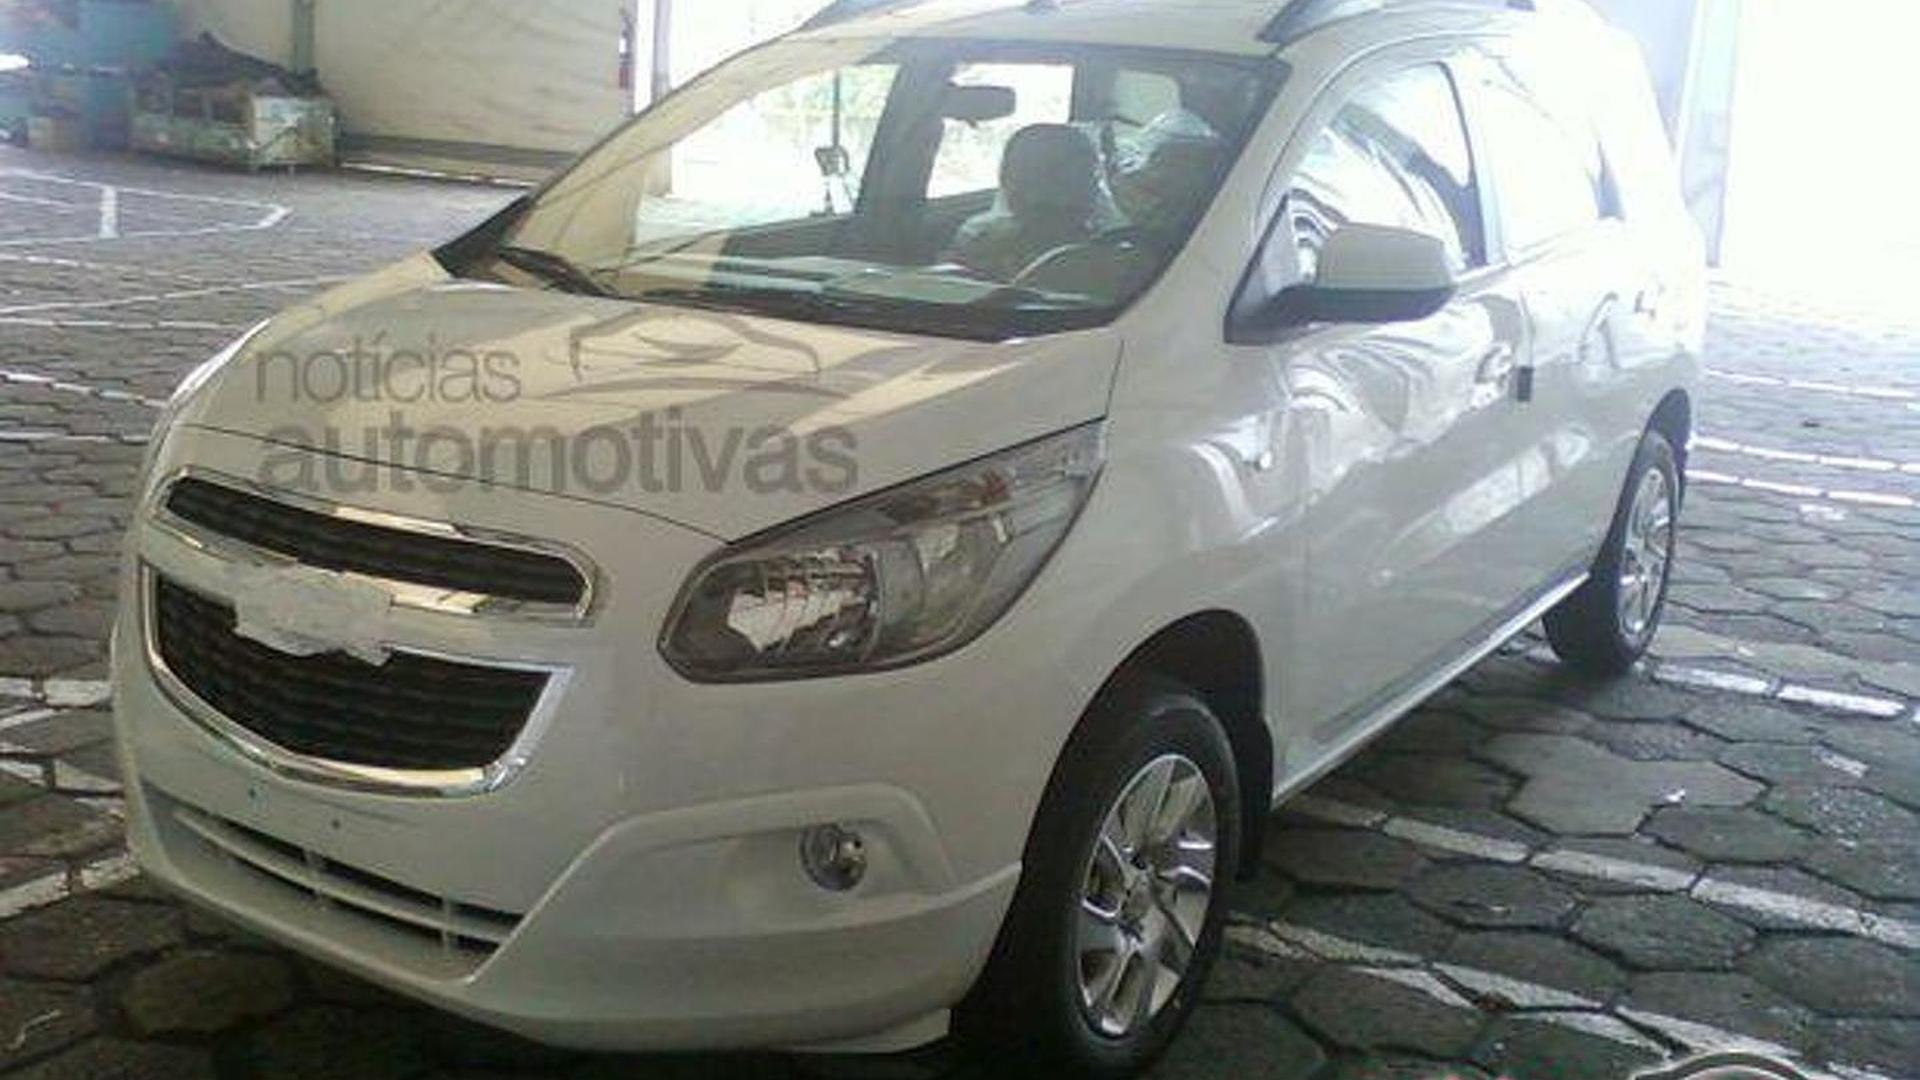 All-new 2013 Chevrolet Spin MPV teaser spoiled by spy photos on car spin, testimoni chevy spin, hummer spin, honda spin, mobil spin,